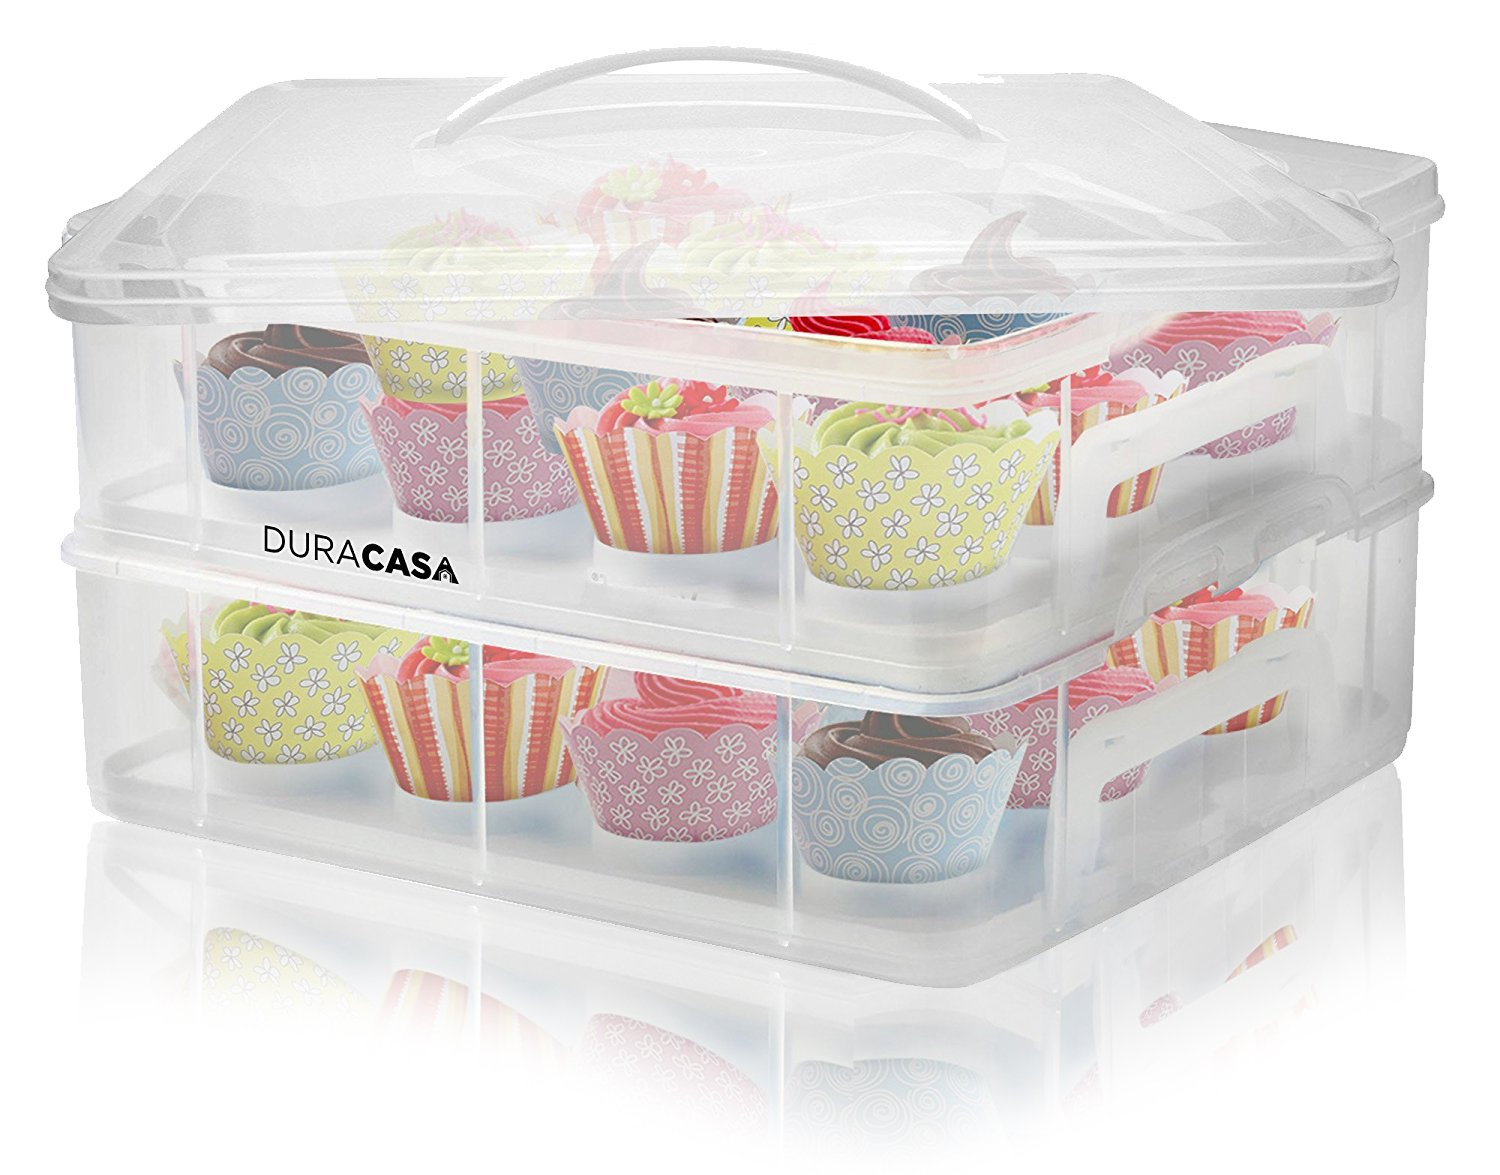 DuraCasa Cupcake Carrier | Cupcake Holder | Store up to 24 Cupcakes or 2 Large Cakes | Stacking Cupcake Storage Container | Cupcake, Cookie, or Cake Dessert Carrier (White)